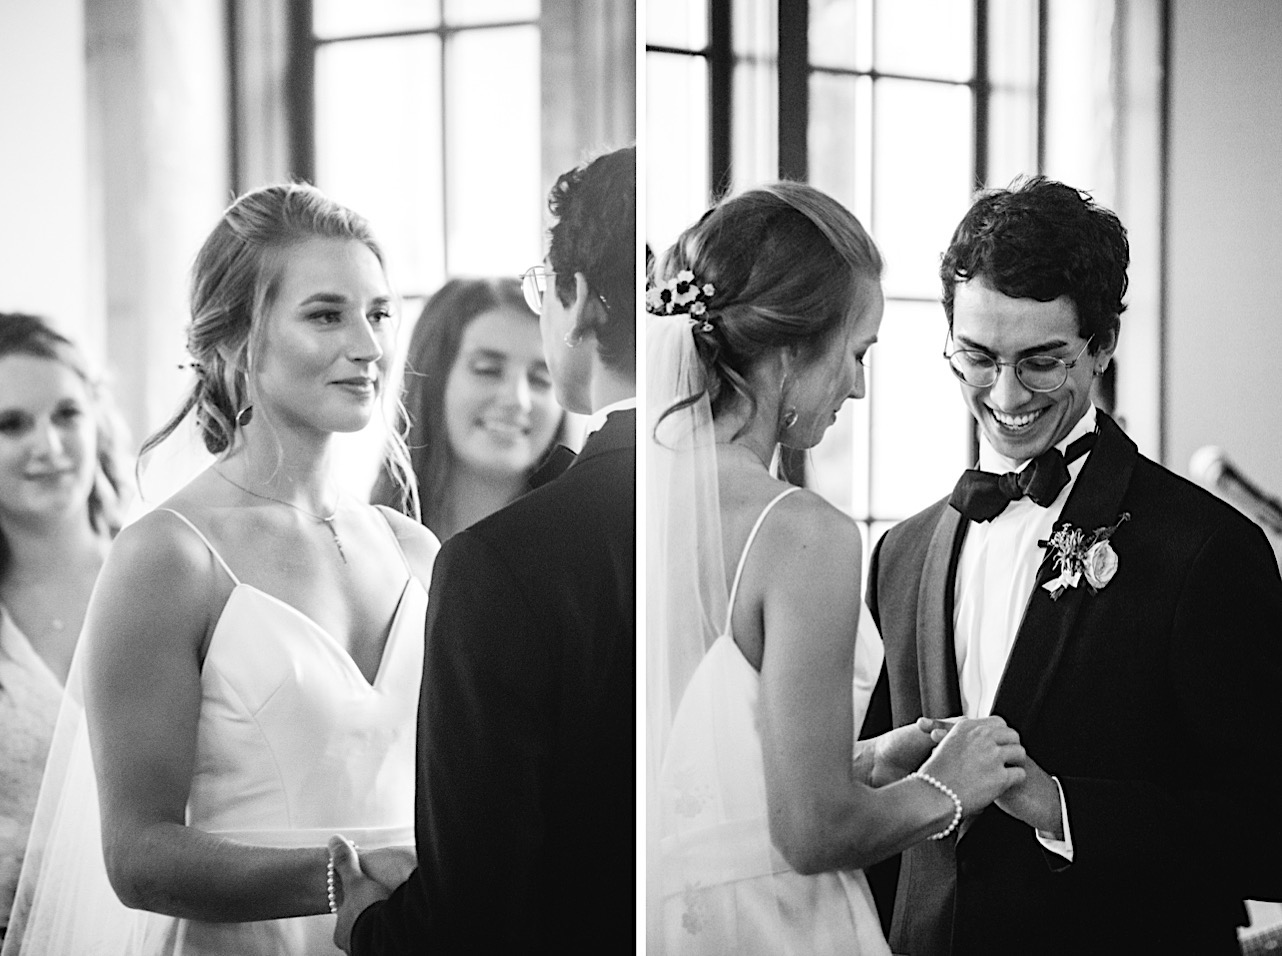 bride and groom smile at each other while she slides a wedding band onto his finger